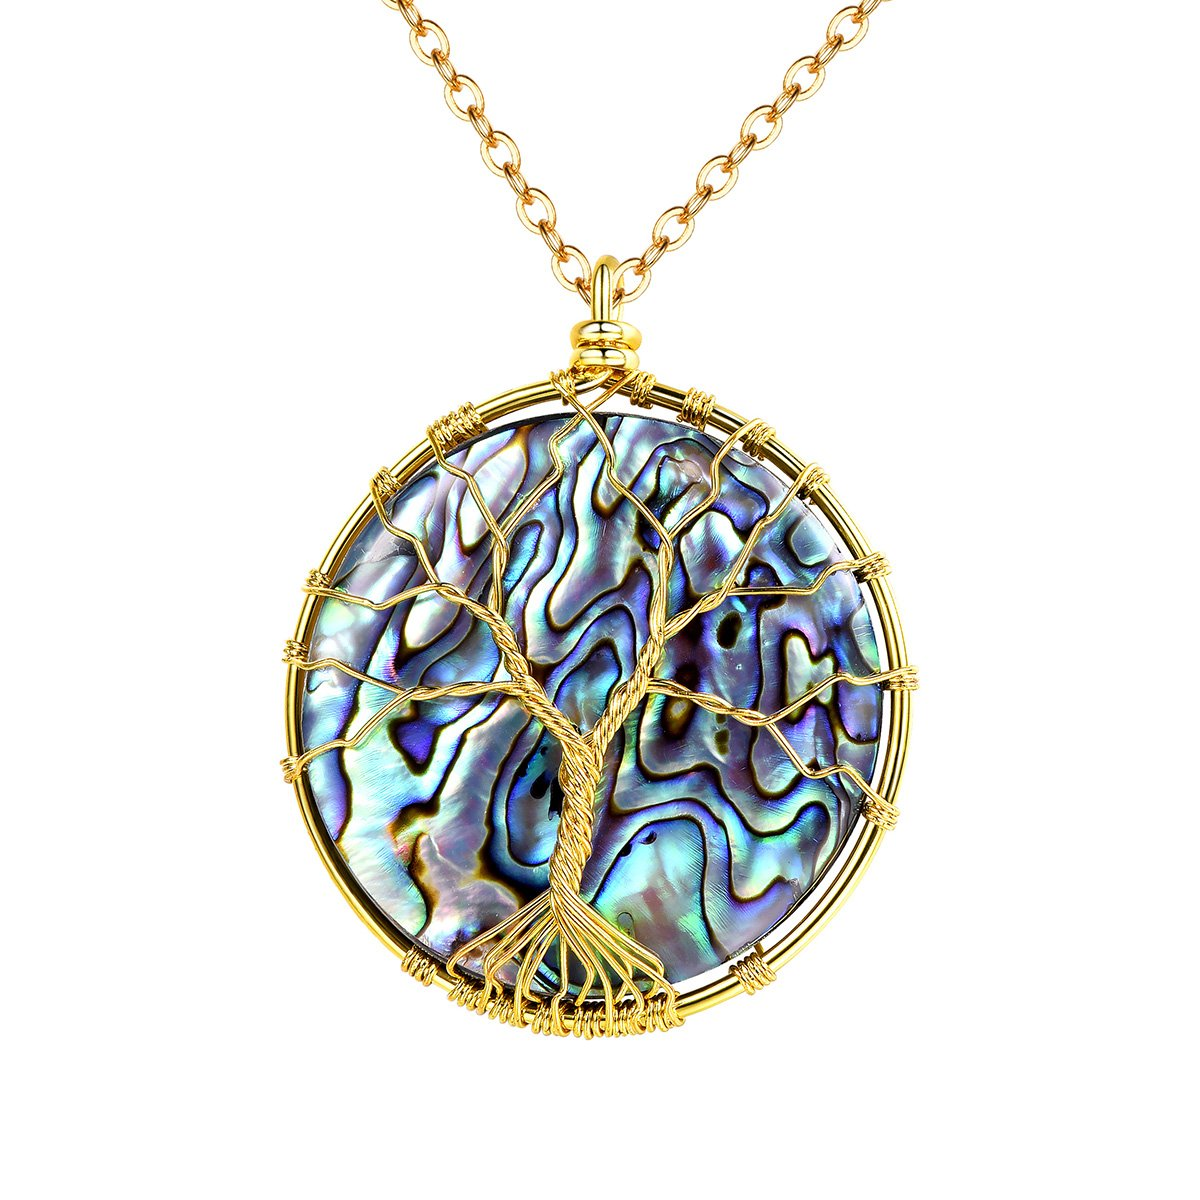 FOCALOOK Fashion Jewelry Wire Wrapped Tree of Wisdom Life Pendant Handmade Natural Charm Gemstone Abalone Bead Necklace FOCALOOK JEWELRY FP9057K-USA